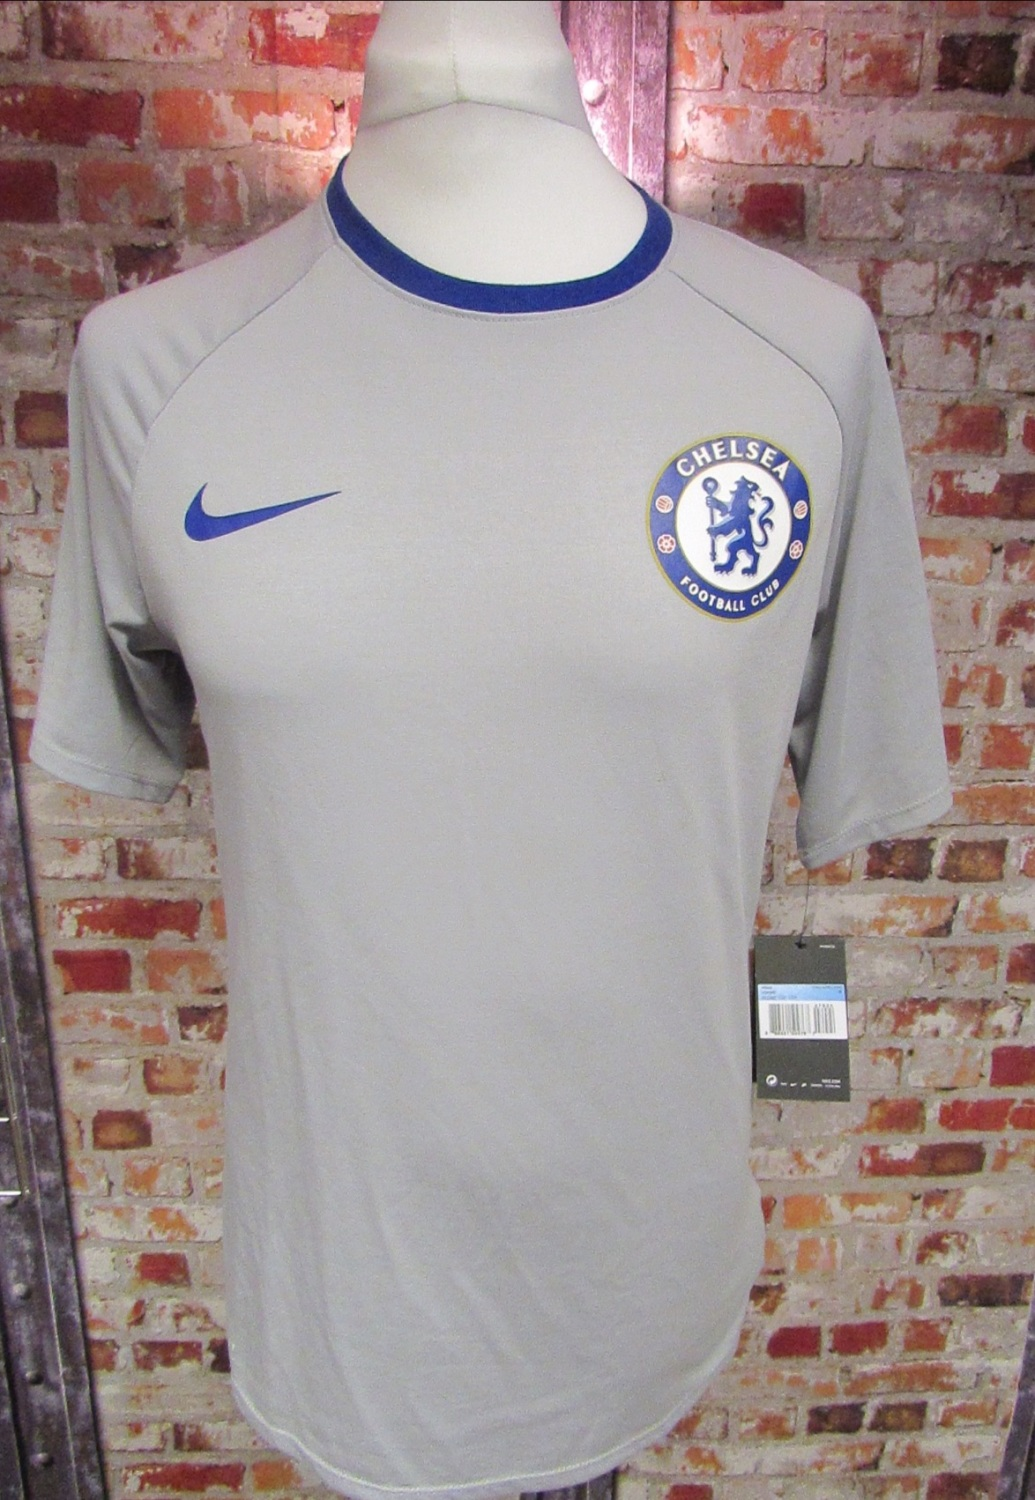 Nike Chelsea Retro Dry Match T-Shirt 2017/18 Grey and Blue